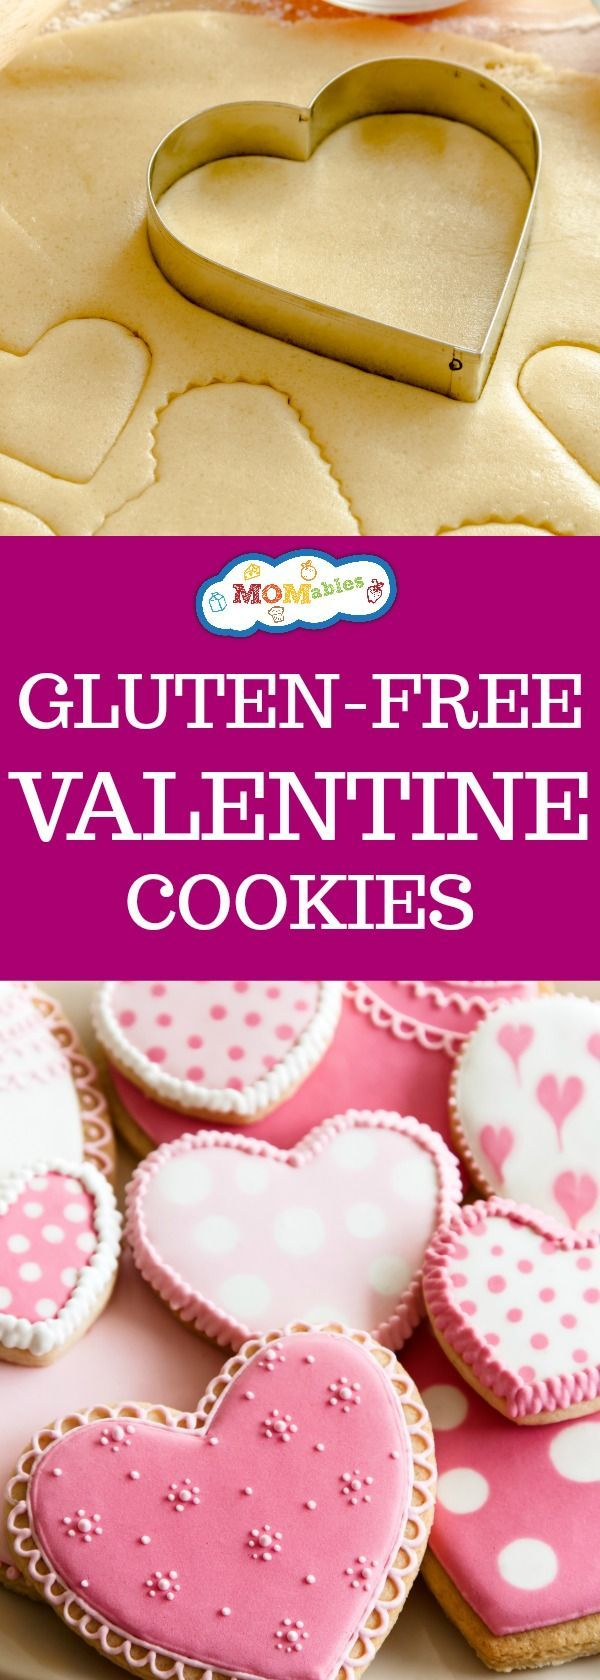 The gluten-free sugar cookie recipe you need to have on hand to cut into shapes and frost! One recipe for year-round enjoyment. The BEST recipe yet!